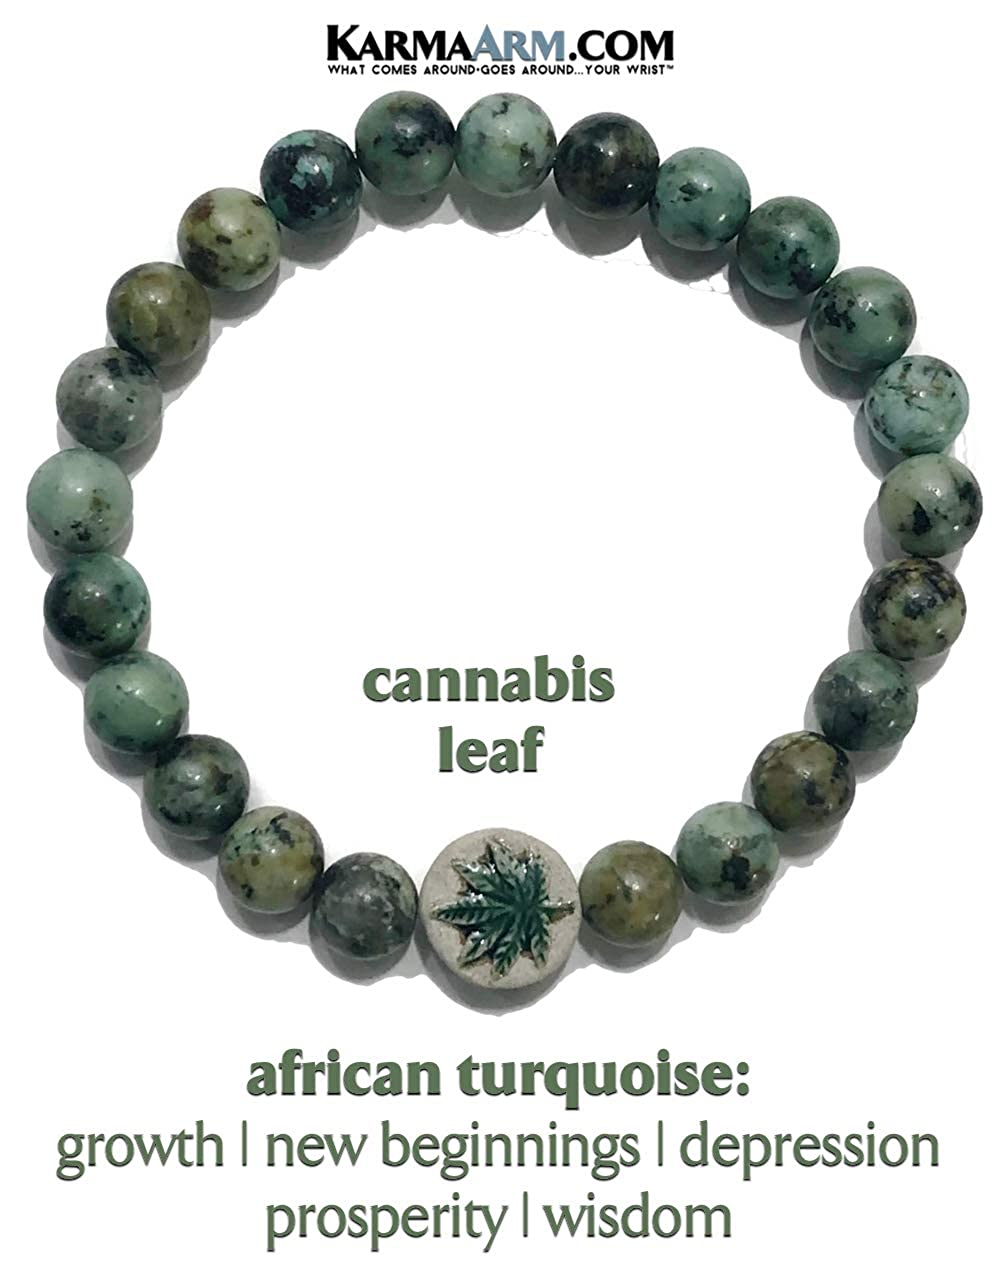 Reiki Healing Energy Mantra Zen Jewelry Yoga Chakra Stretch Beaded Charm Bracelets Self-Care Wellness Wristband KarmaArm Meditation Bracelet Growth : African Turquoise Pot Cannabis Leaf